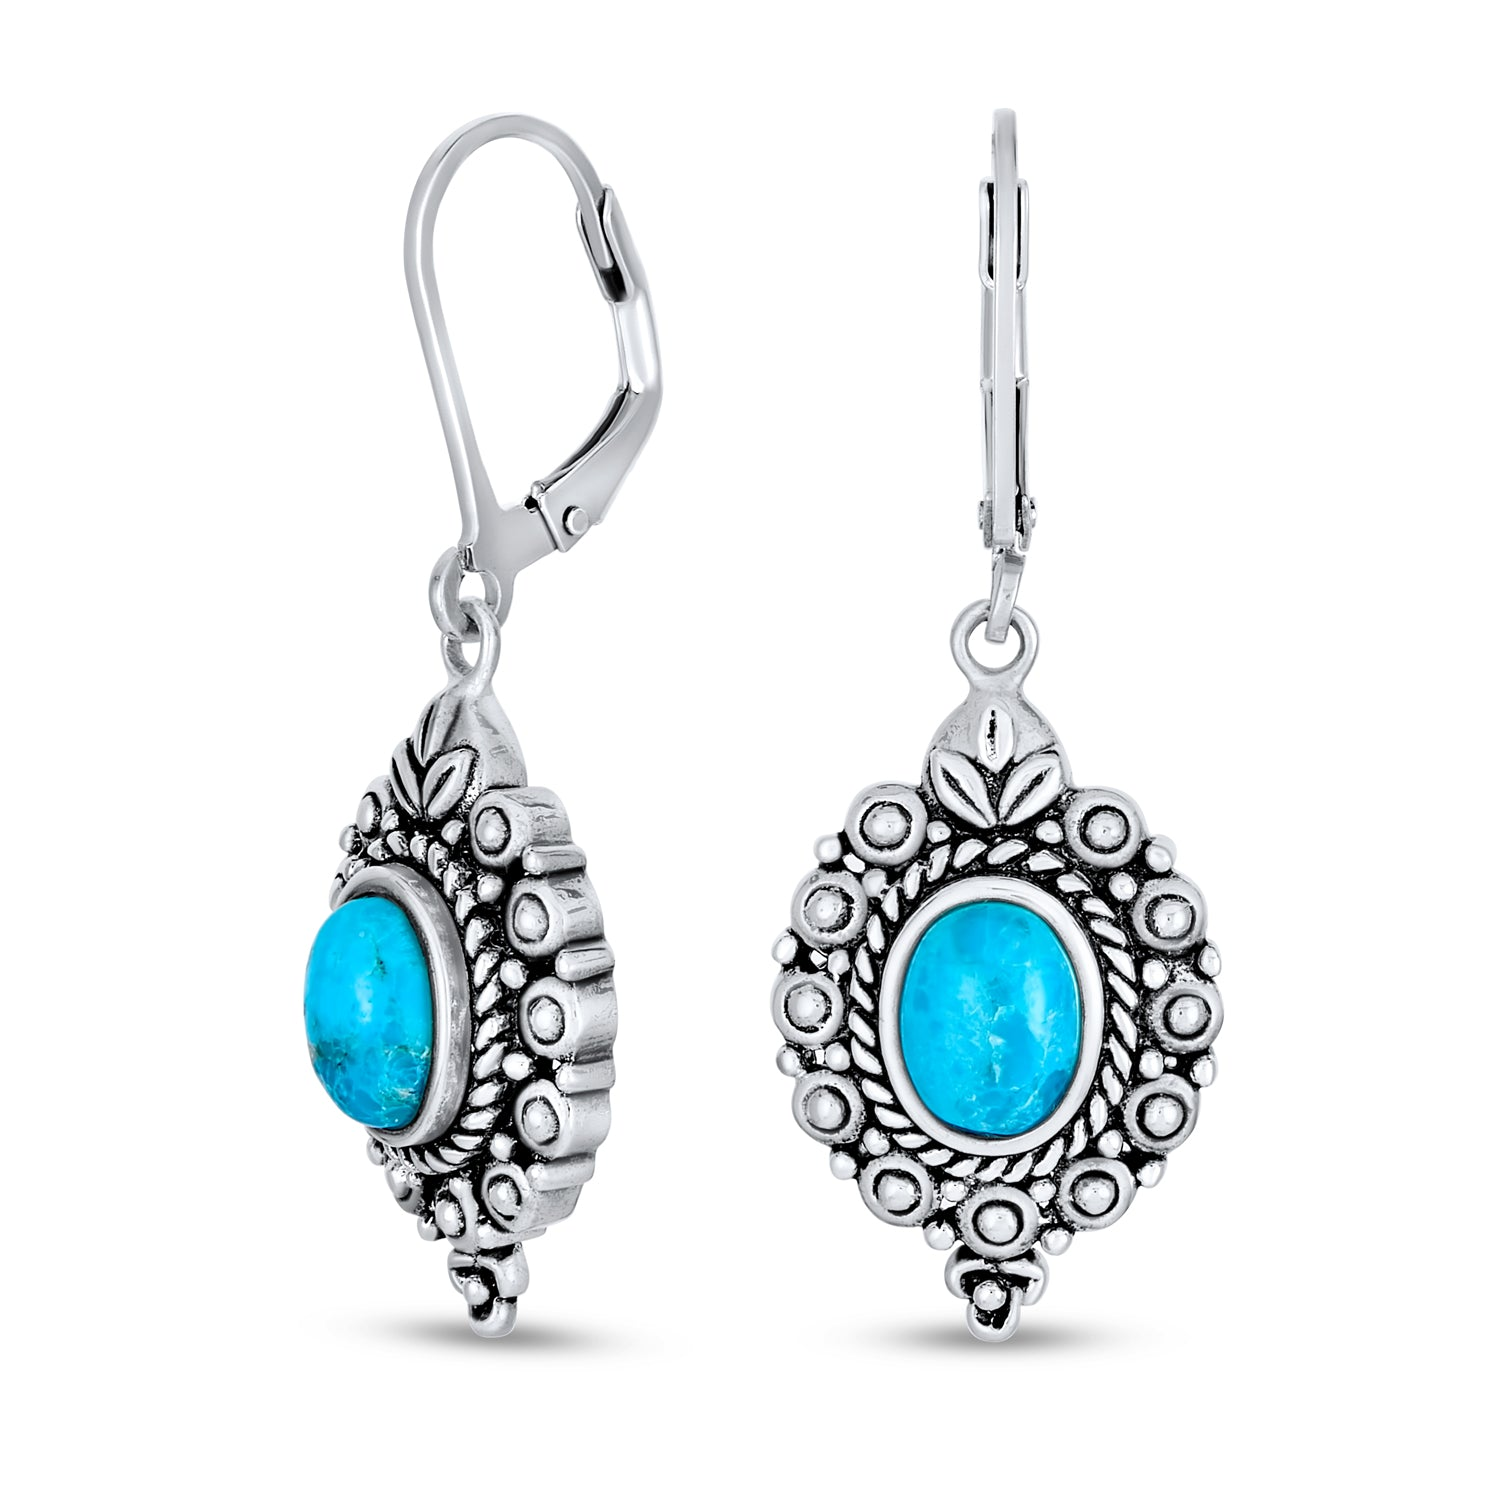 Turquoise and Sterling Silver Clover Earrings Gift for Woman